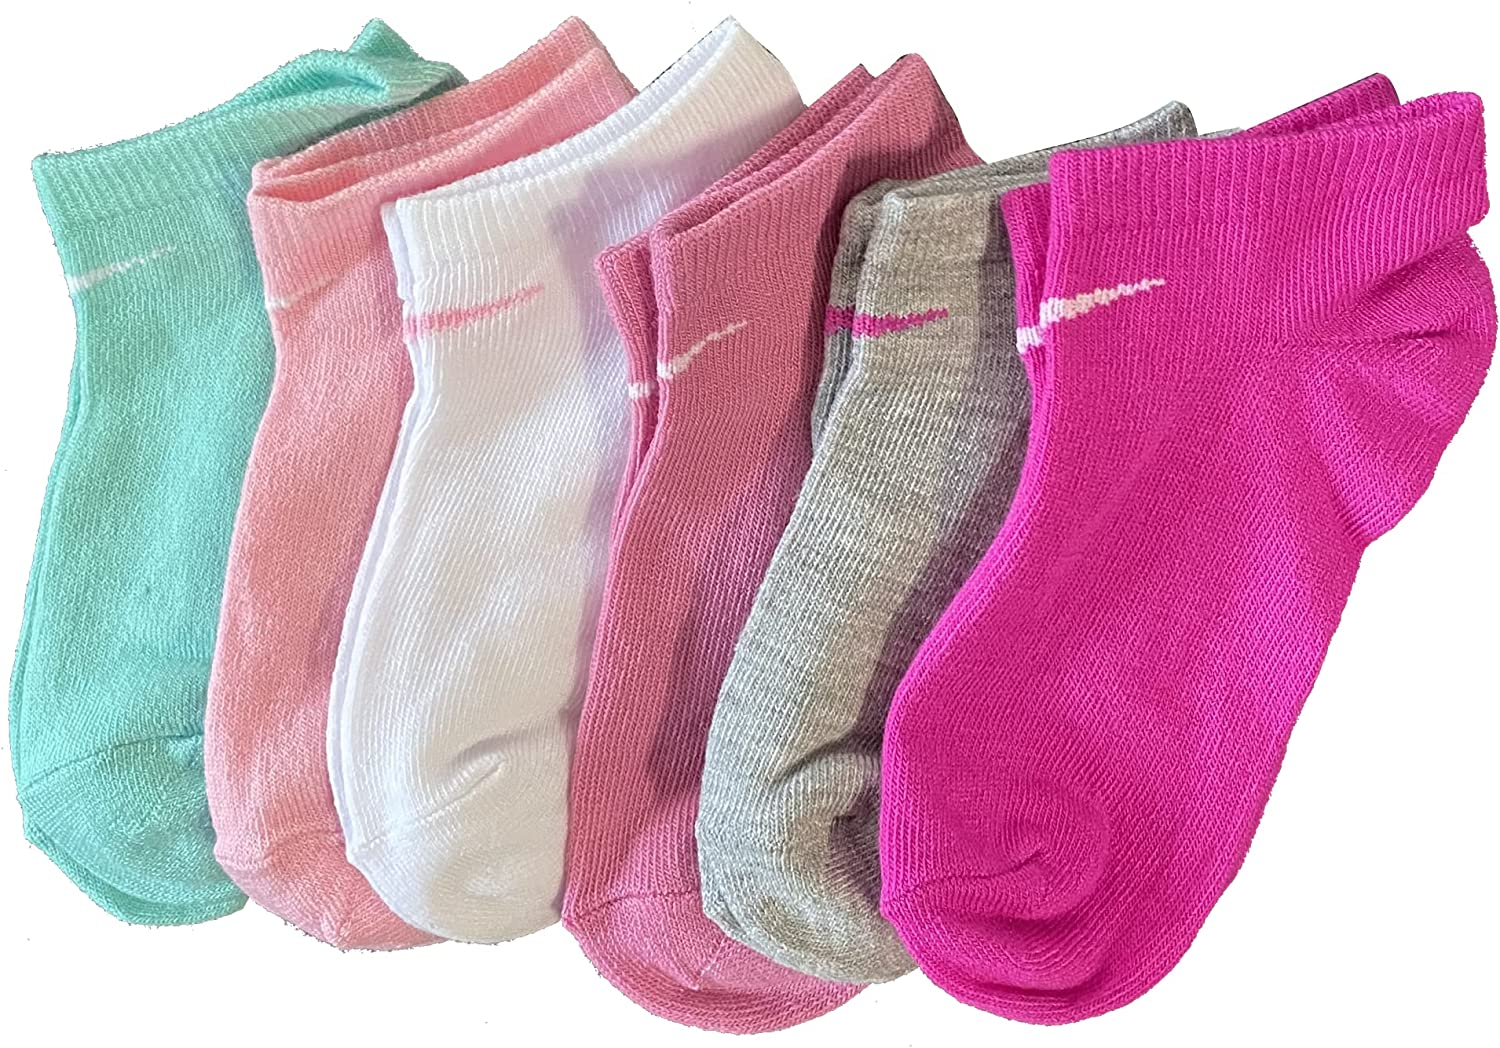 Nike Little Girl's No show Socks (6 Pairs), Shoe Size 10C-3Y/5-7 (Sock Size)